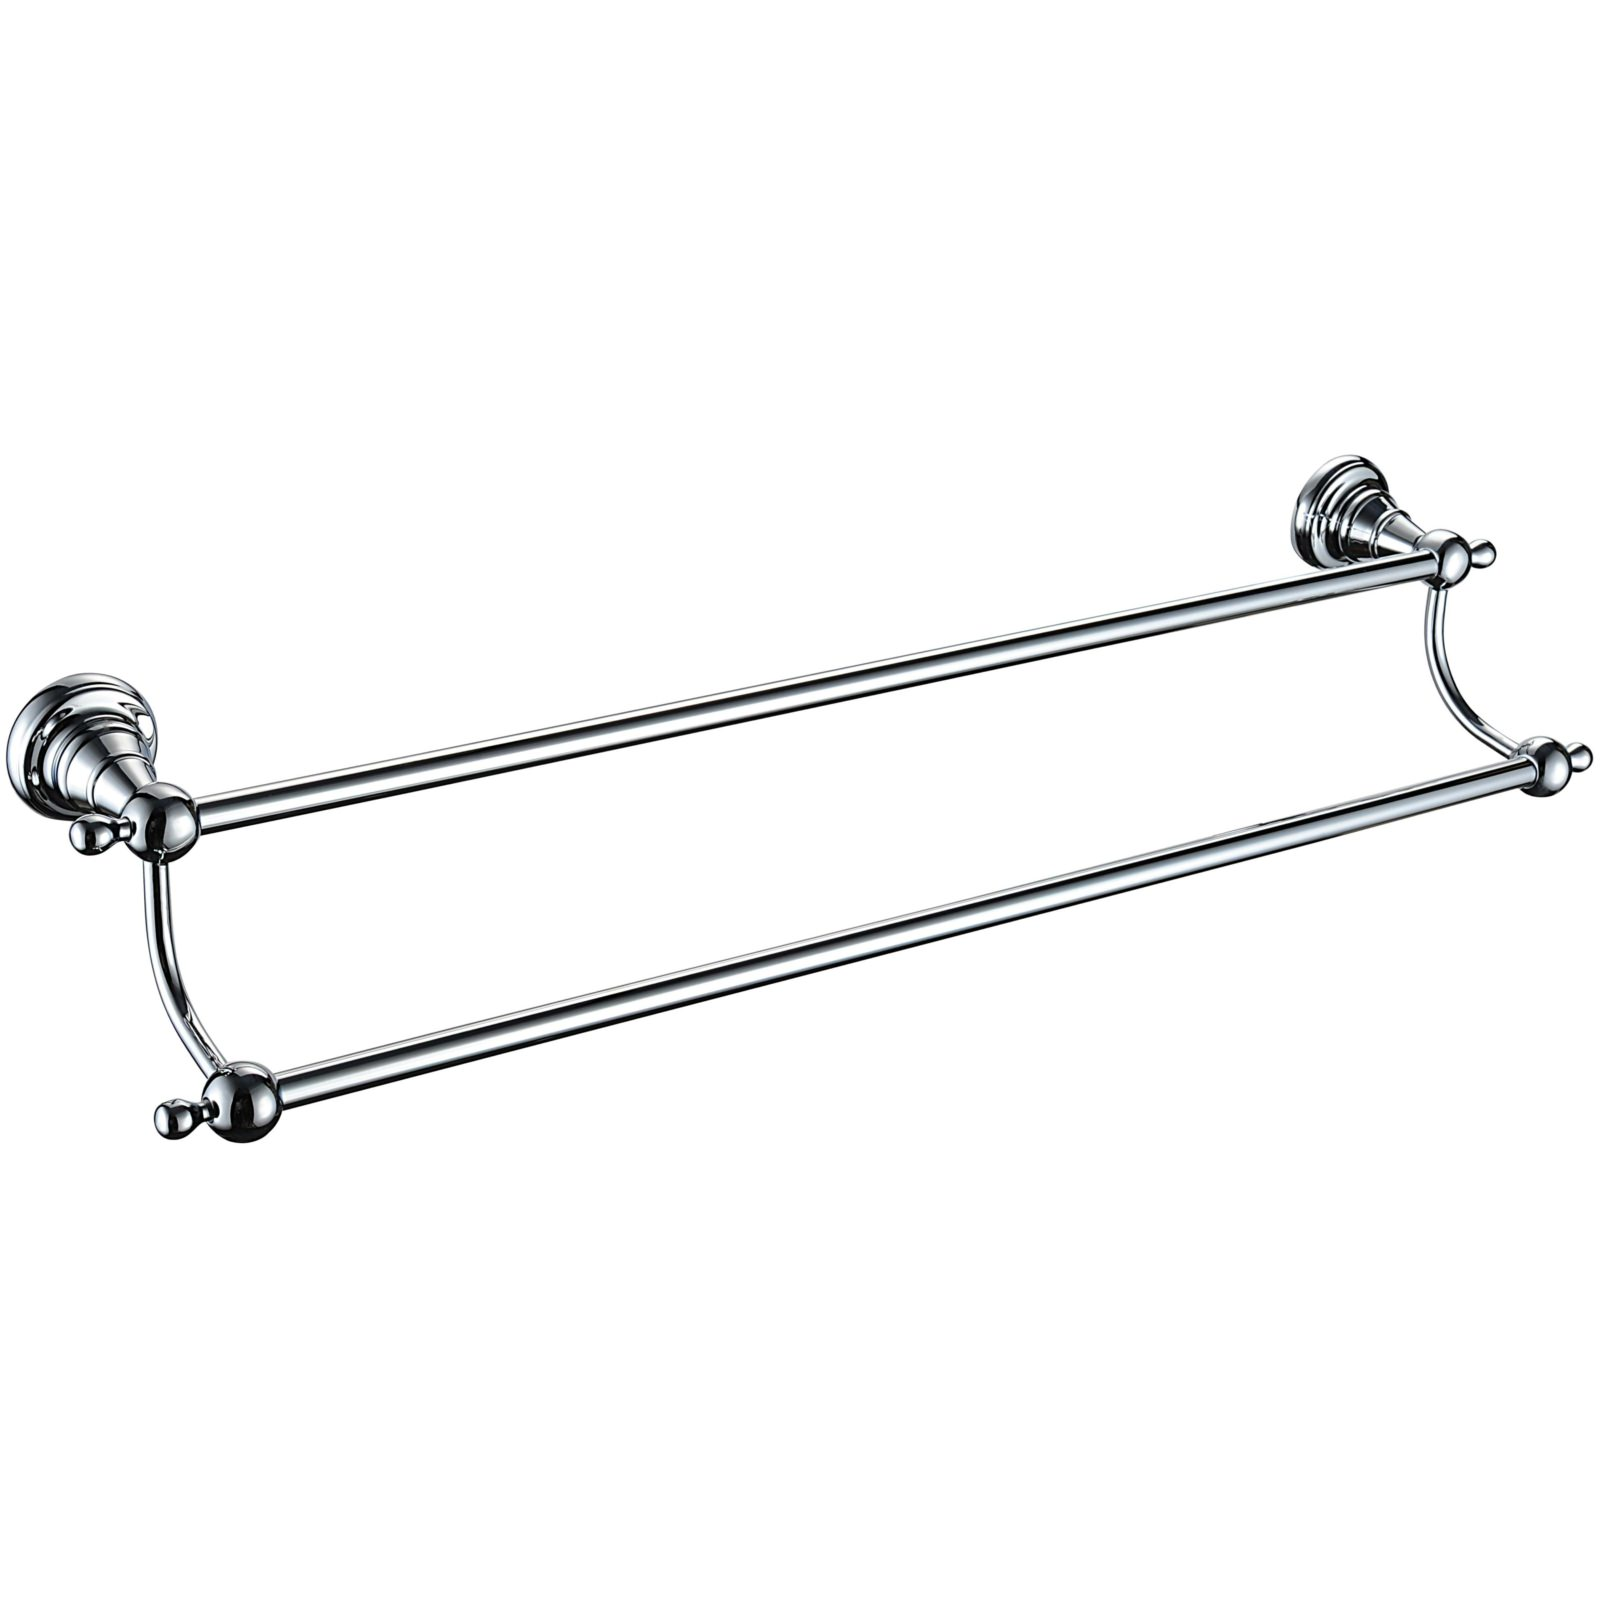 Heritage Holborn 615mm Chrome Double Bar Towel Rail